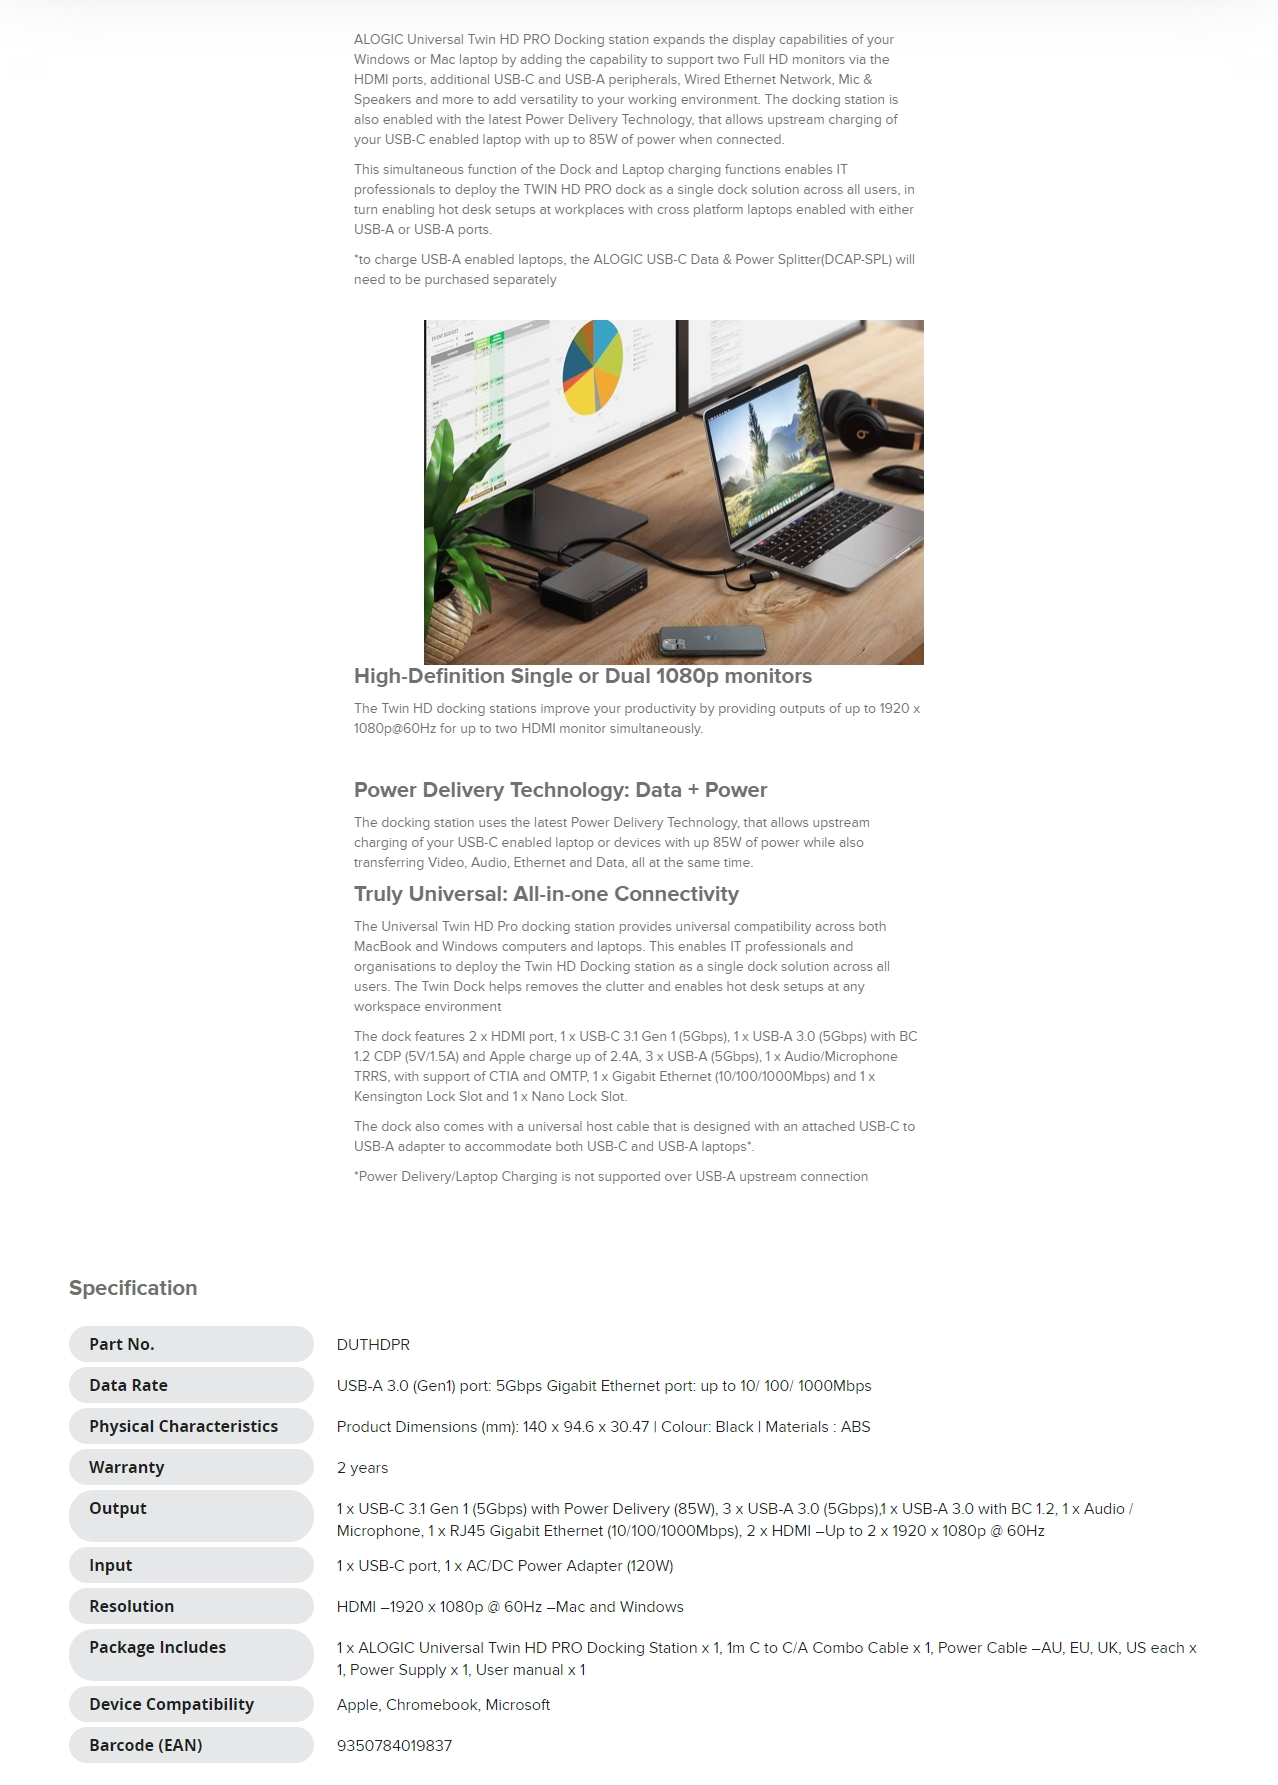 A large marketing image providing additional information about the product ALOGIC Universal TWIN HD PRO Docking Station with Power Delivery 85W - Additional alt info not provided